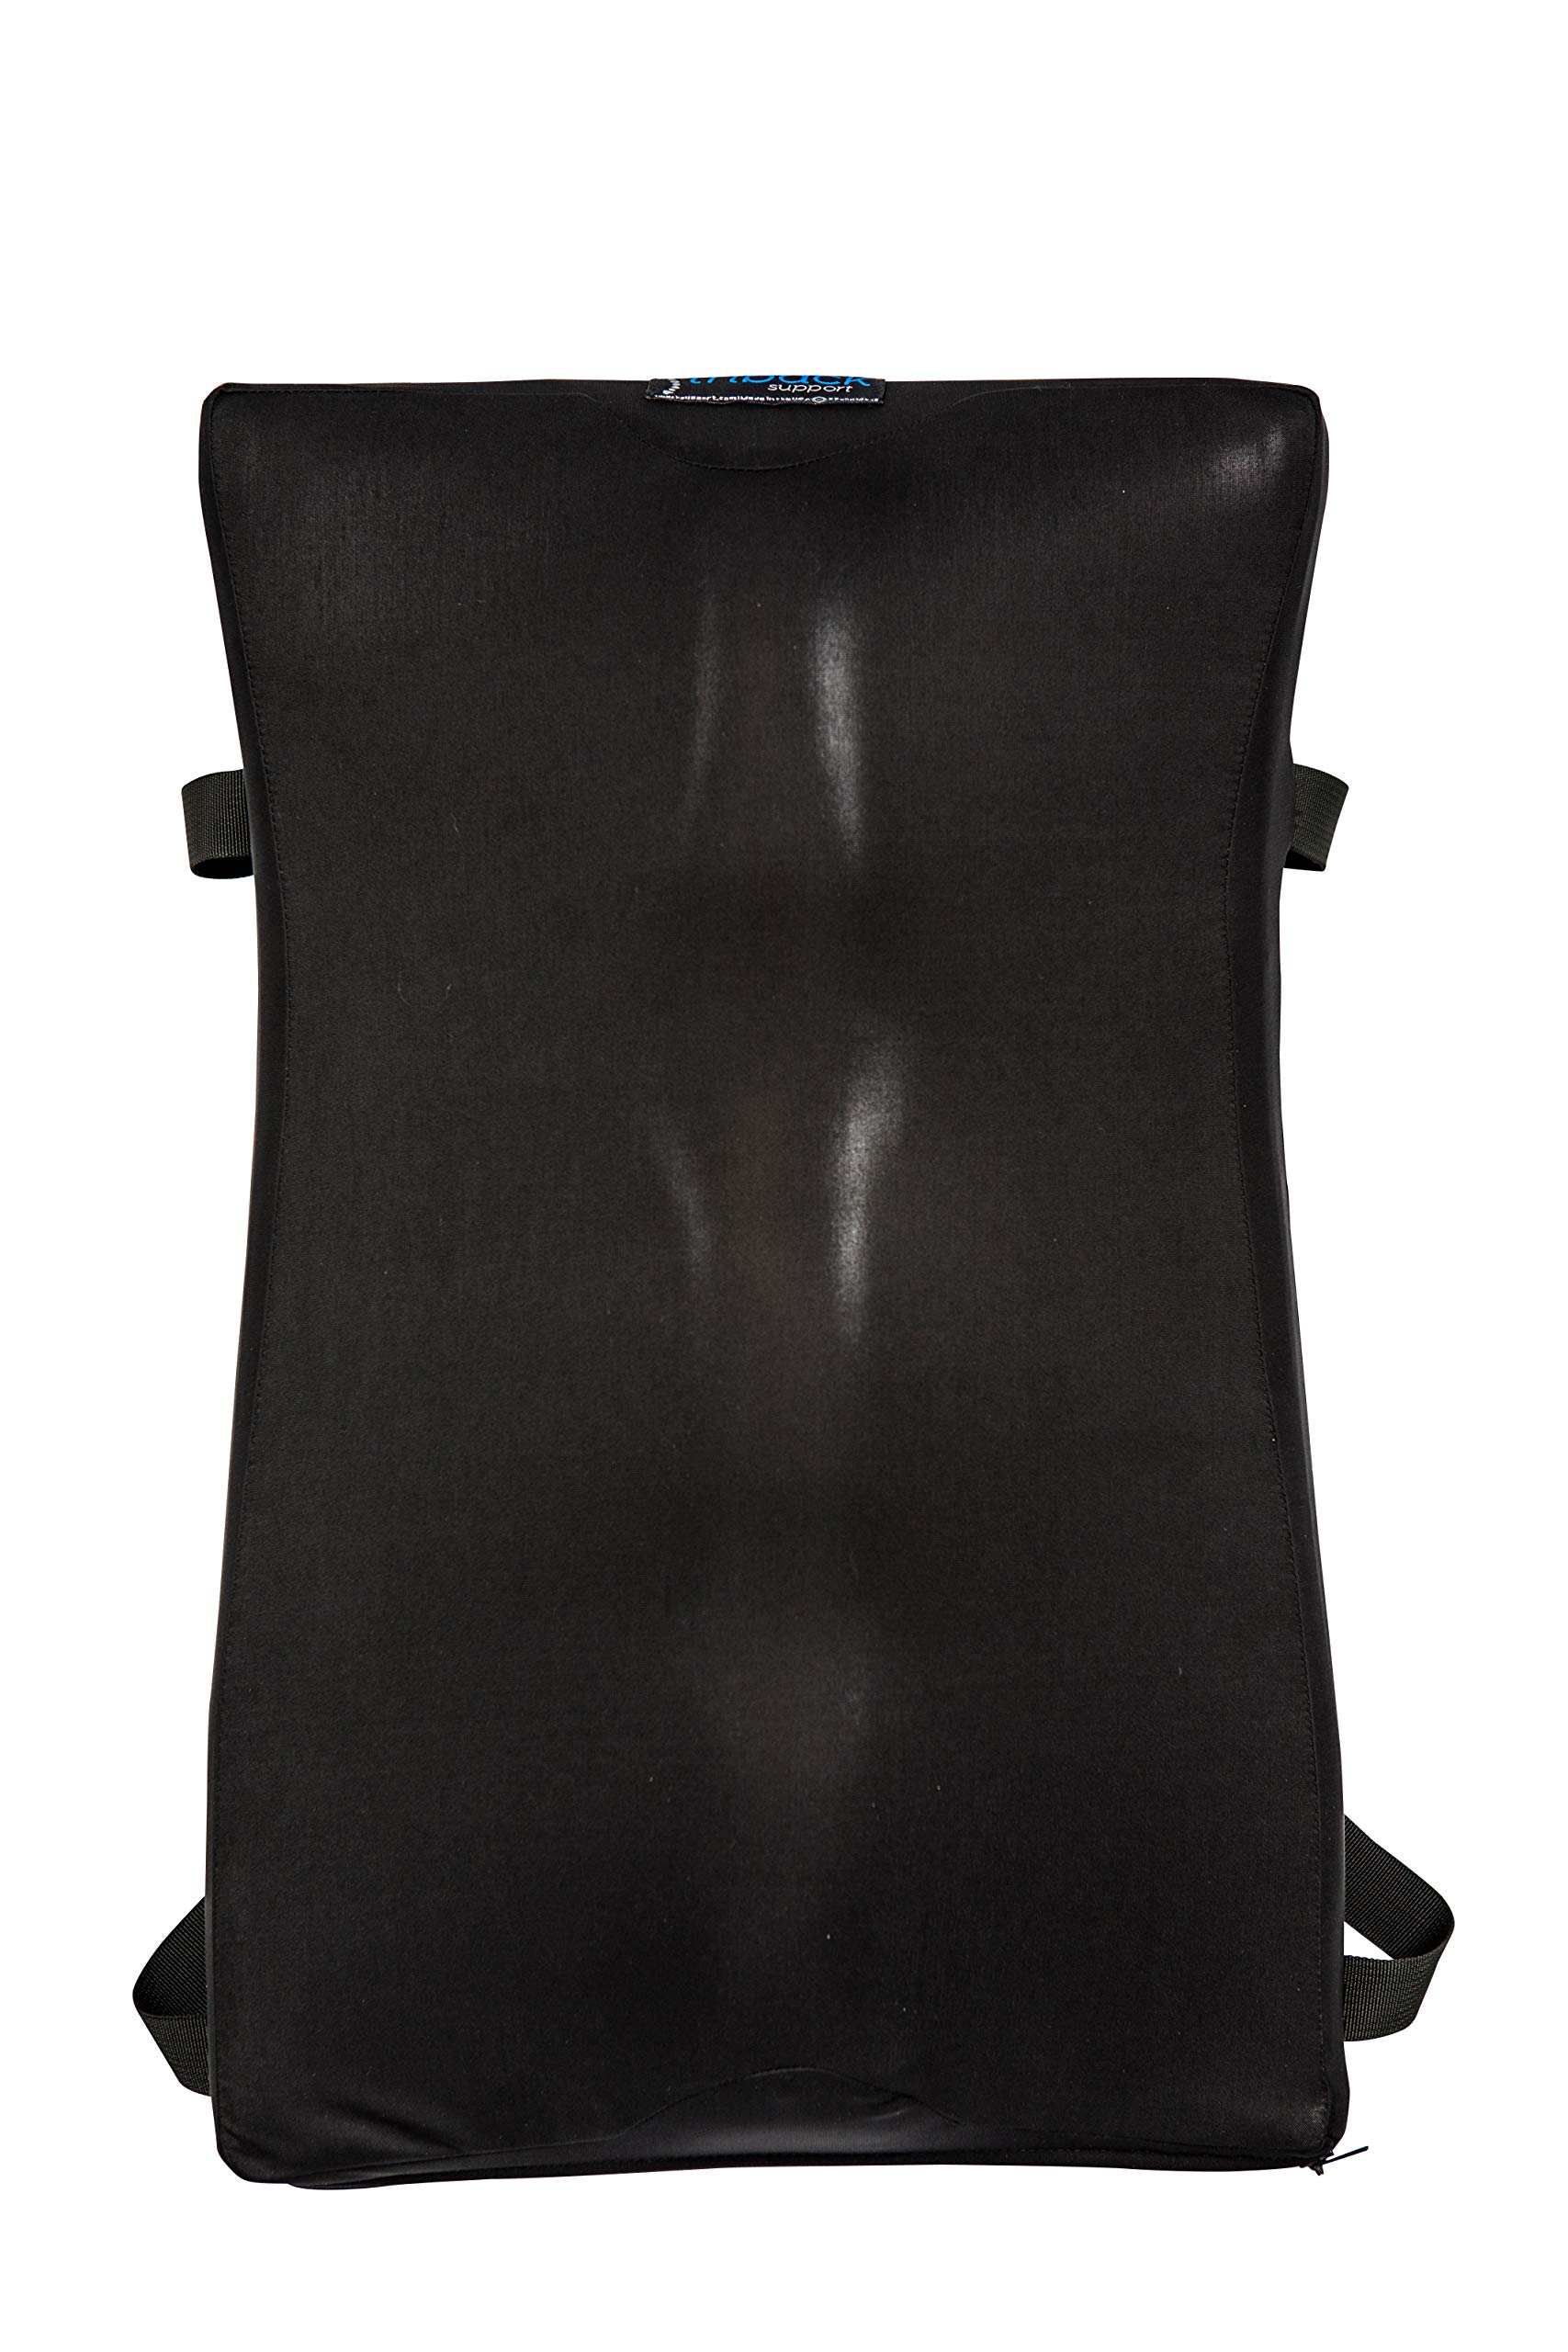 SlouchBeGone Back Support Cushion for Back Pain Relief and Lumbar Support with Adjustable Straps - for car Seats and Office Chairs by SlouchBeGone